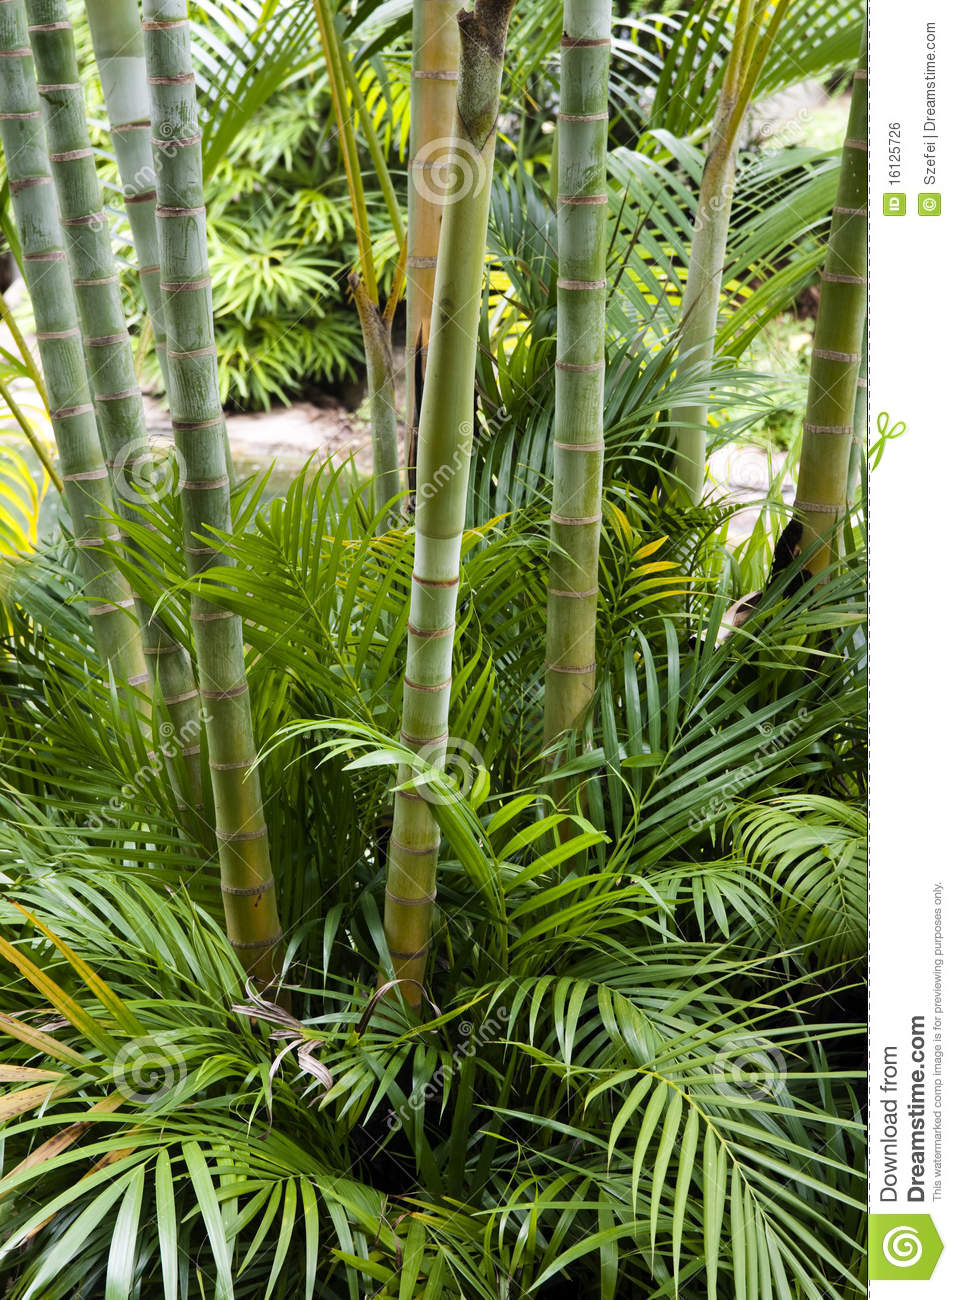 Bamboo Garden Royalty Free Stock Image Image 16125726